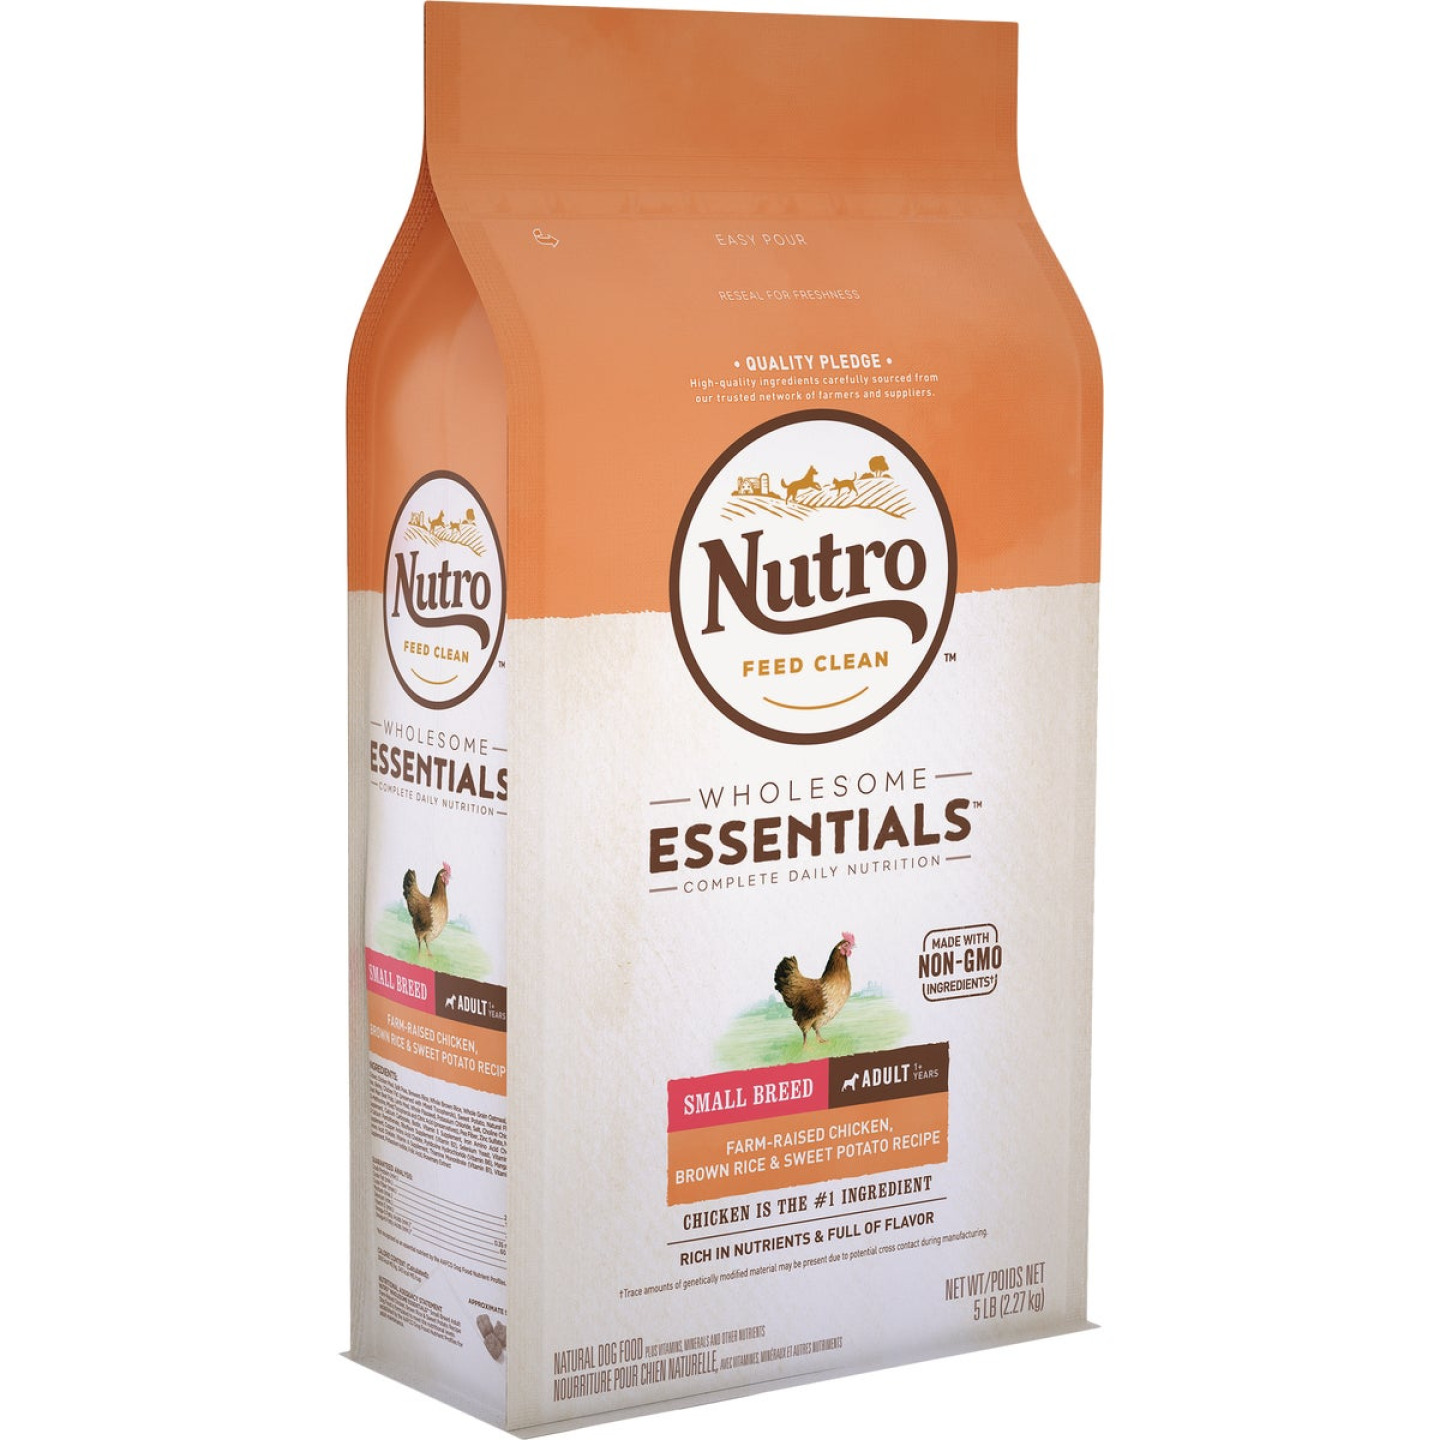 Nutro Wholesome Essentials 5 Lb. Chicken, Brown Rice, & Sweet Potato Small Breed Adult Dry Dog Food Image 1